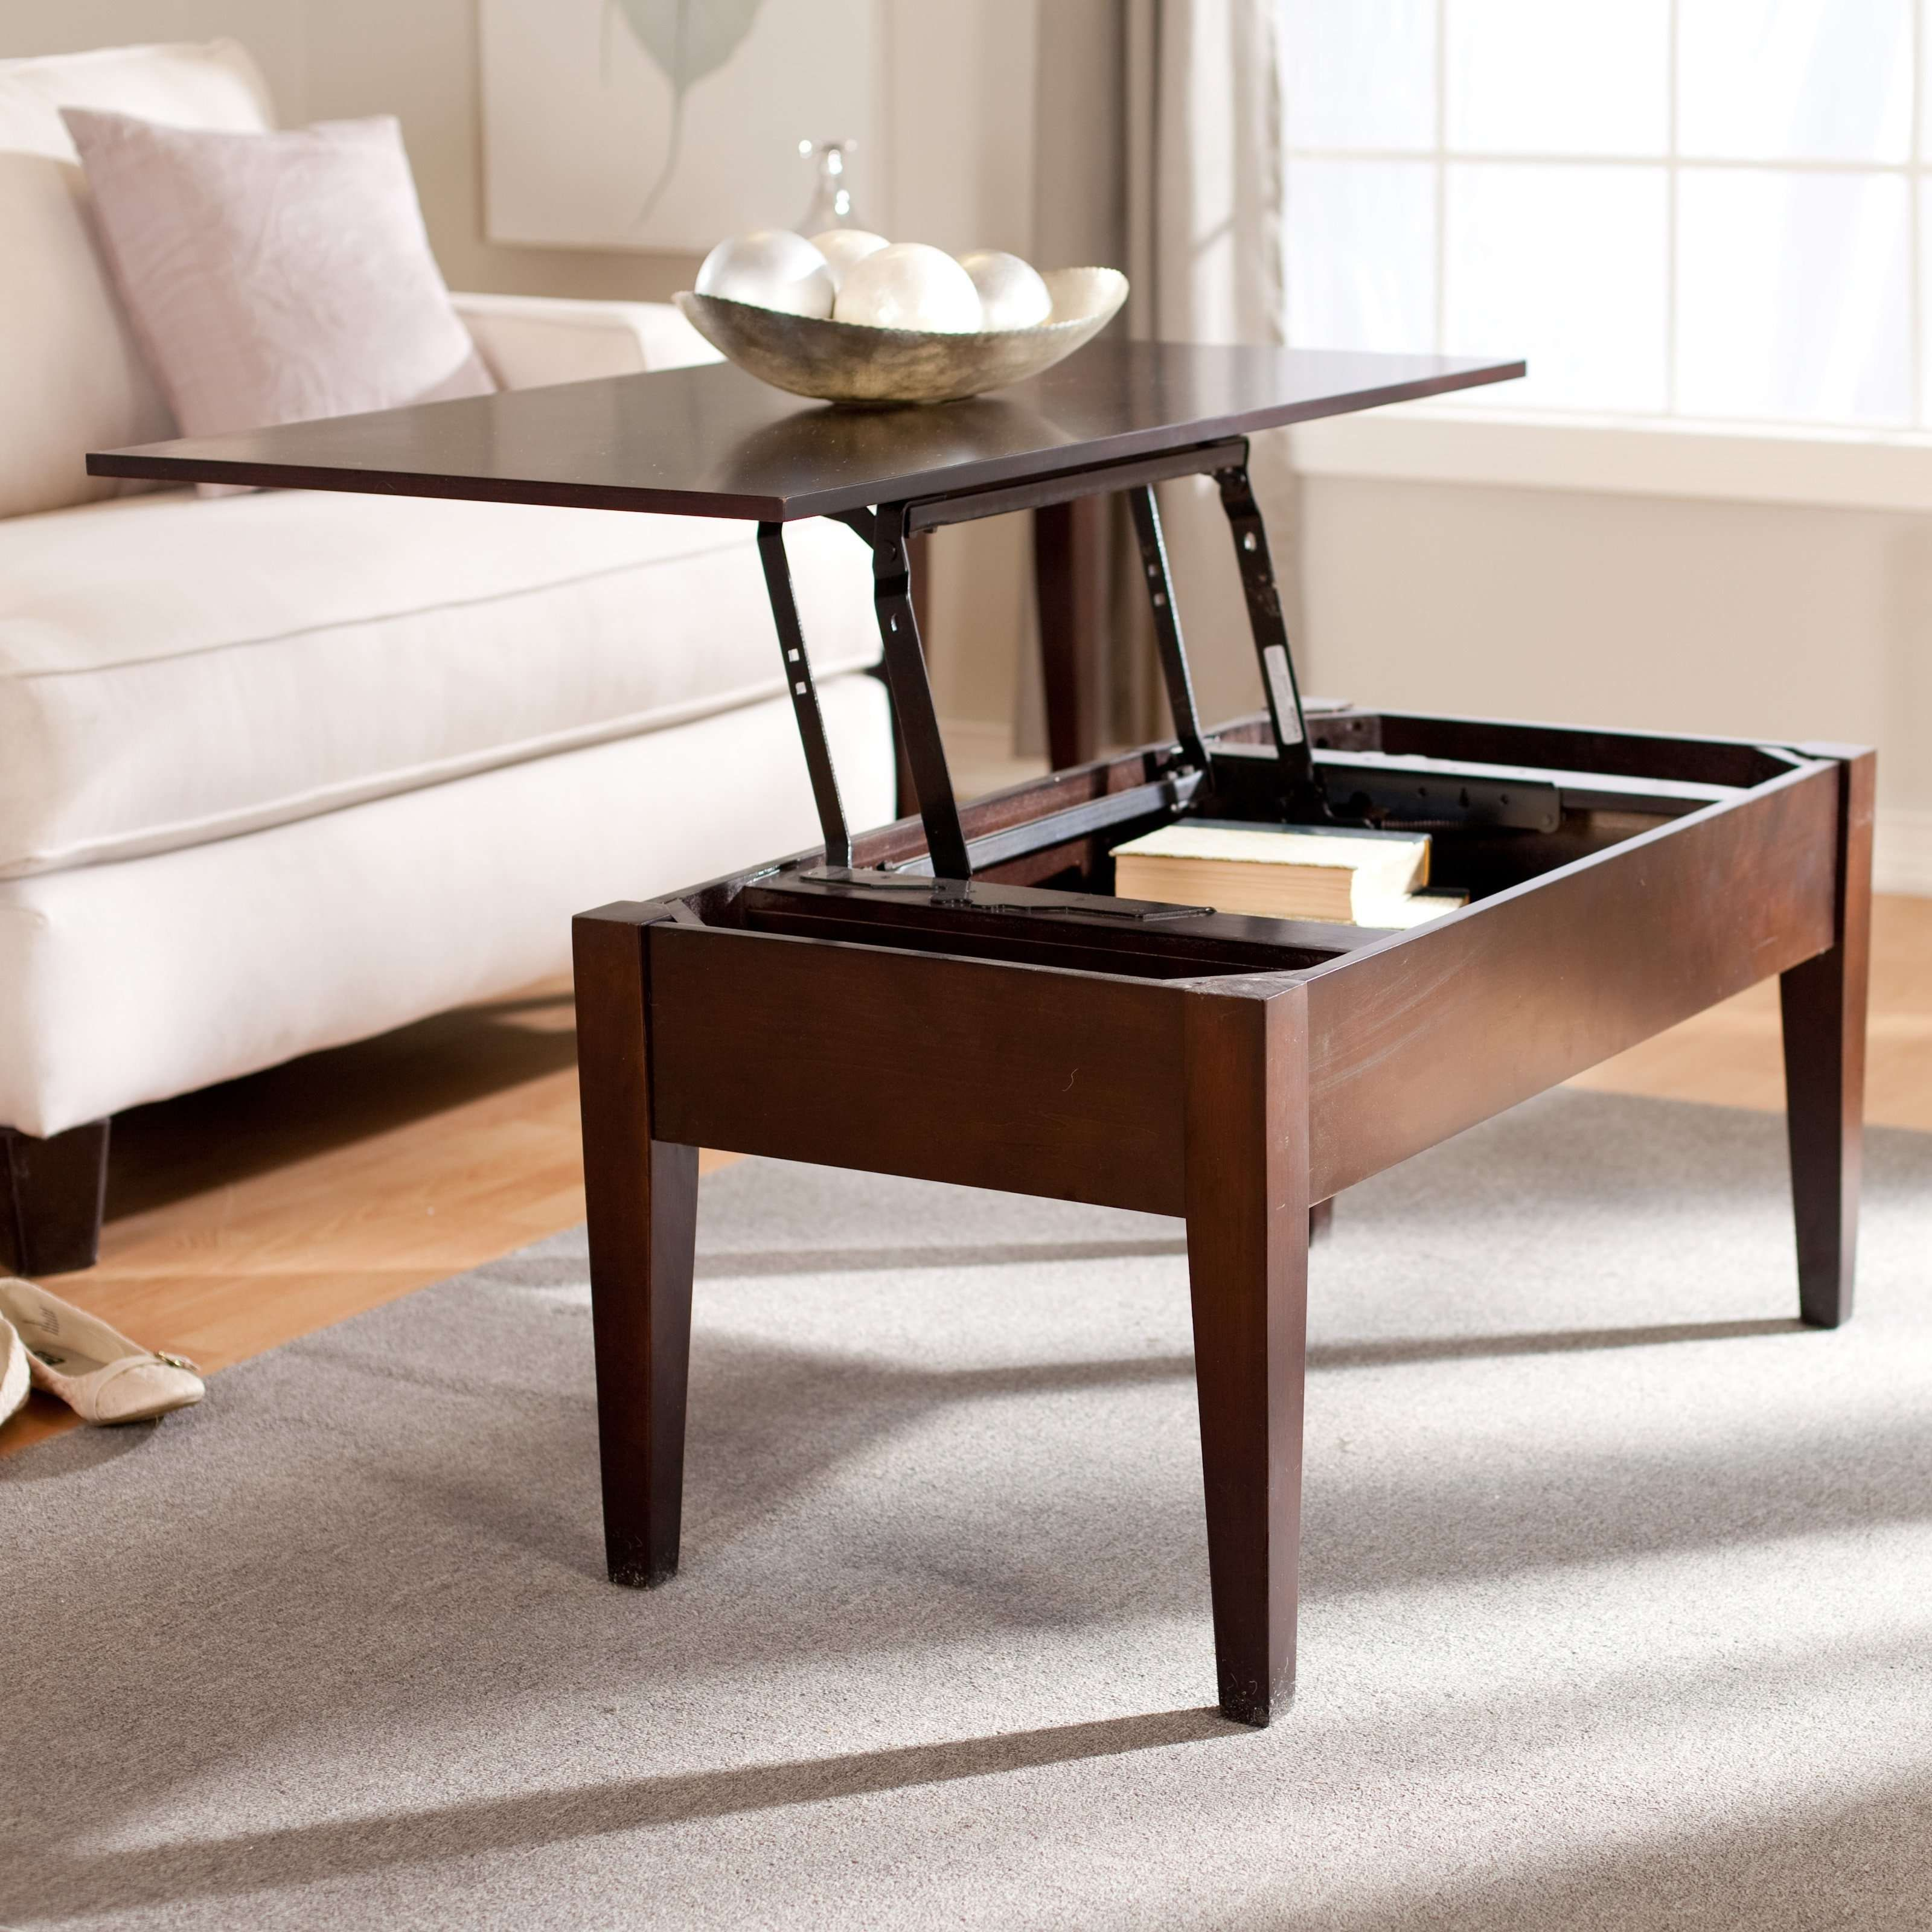 Turner Lift Top Coffee Table Espresso Download Turner Lift Top Coffee Table Espresso View 1 [ 3200 x 3200 Pixel ]